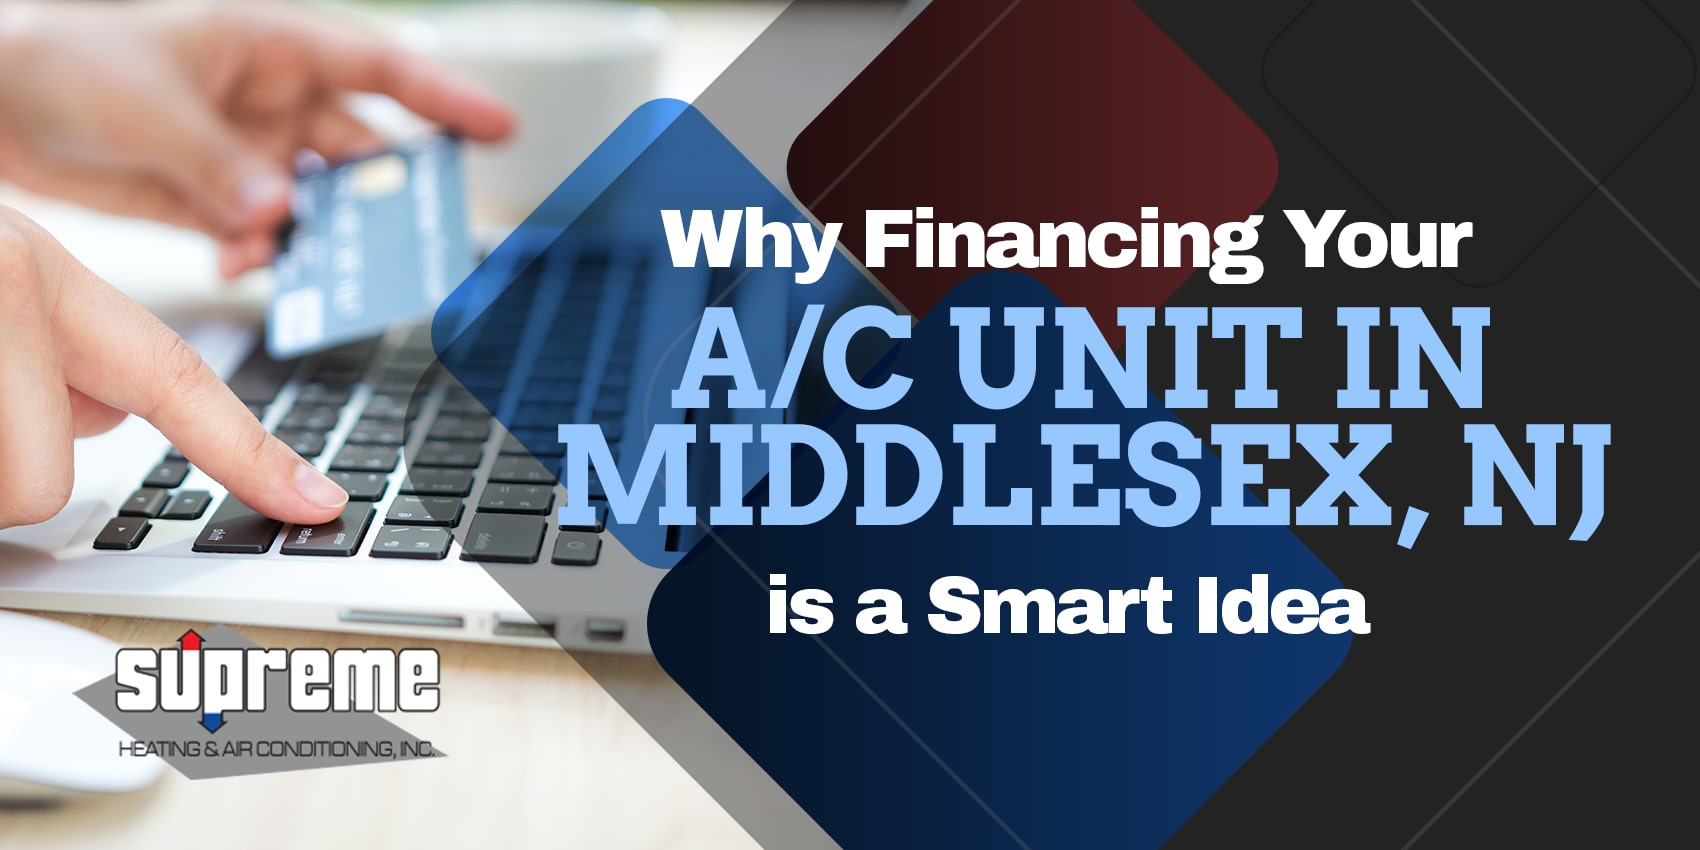 Why Financing A/C Unit in Middlesex, NJ is a Smart Idea